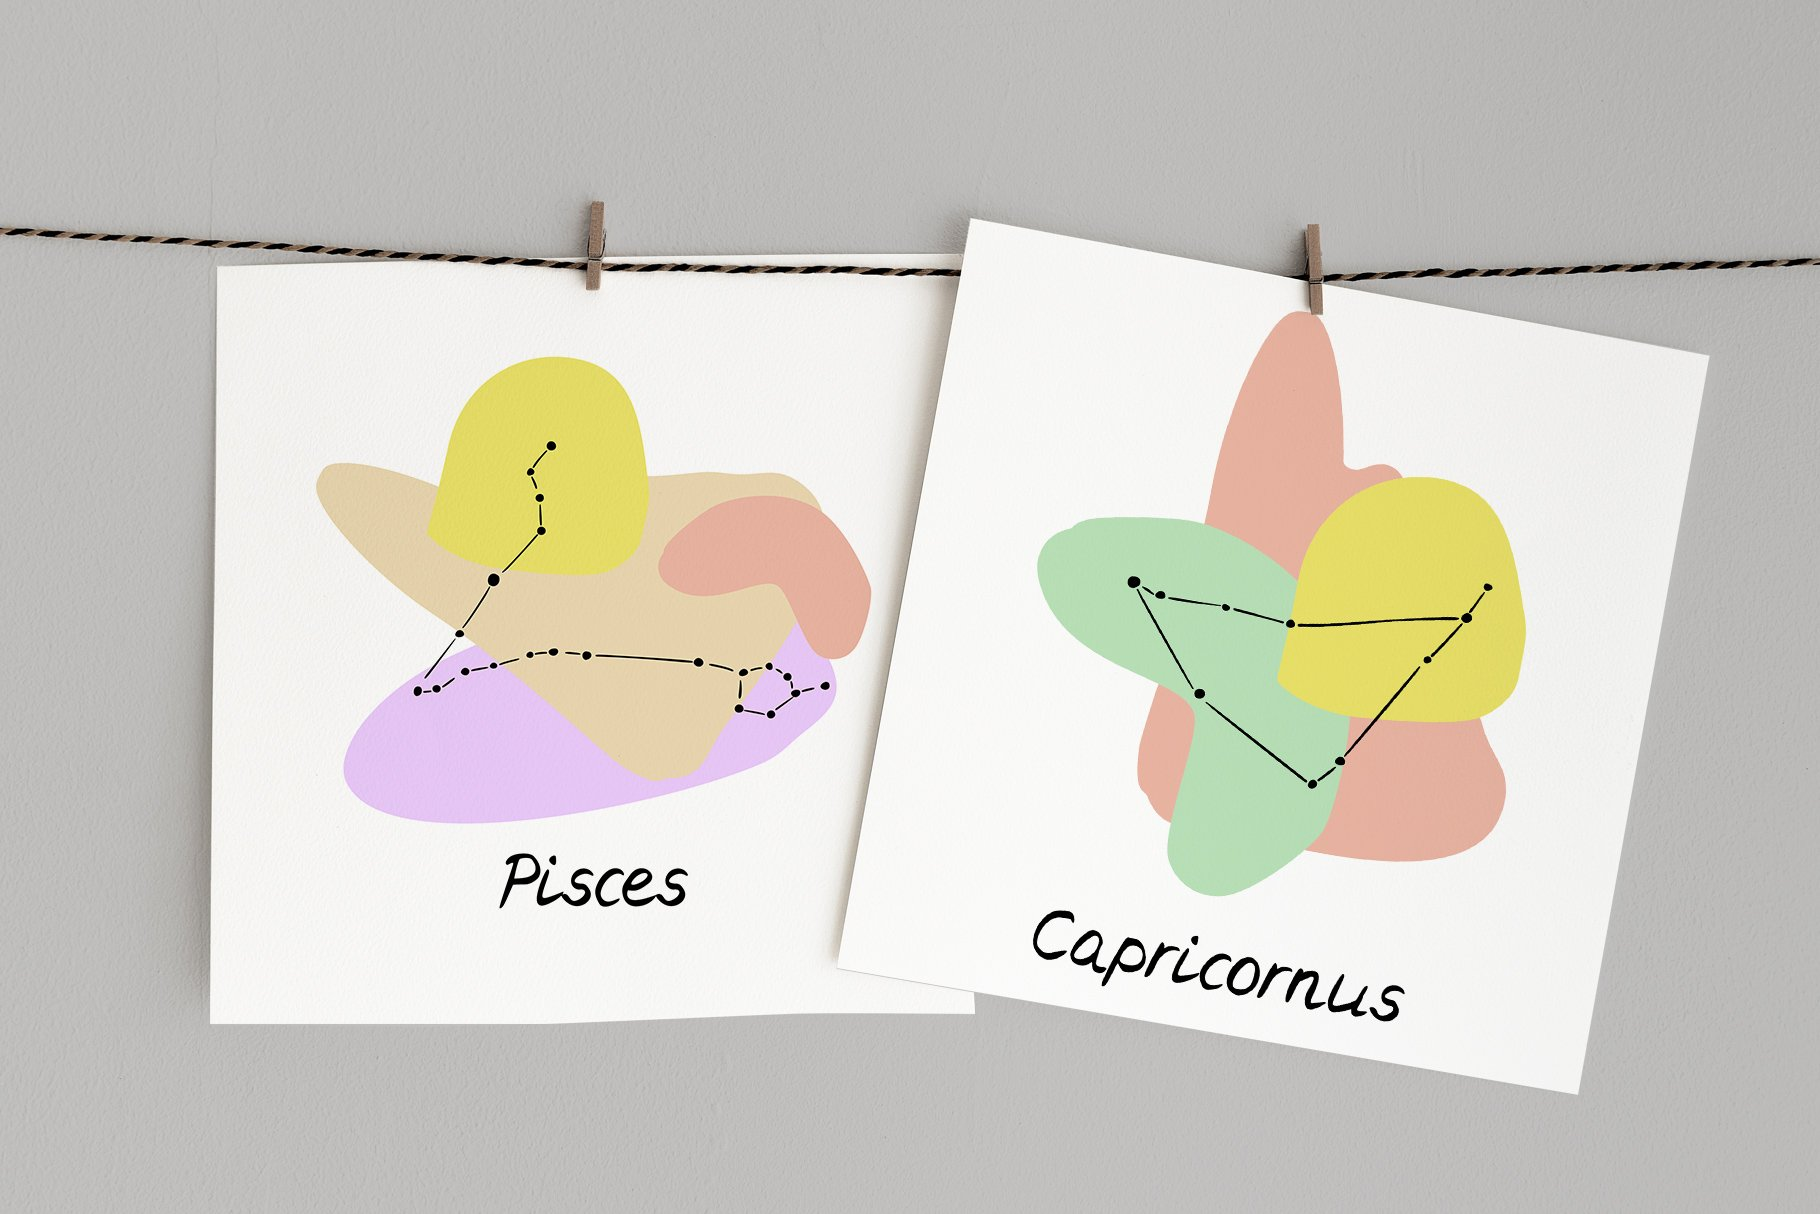 Cards Made On The Abstrac Zodiac Signs Vector Illustration.